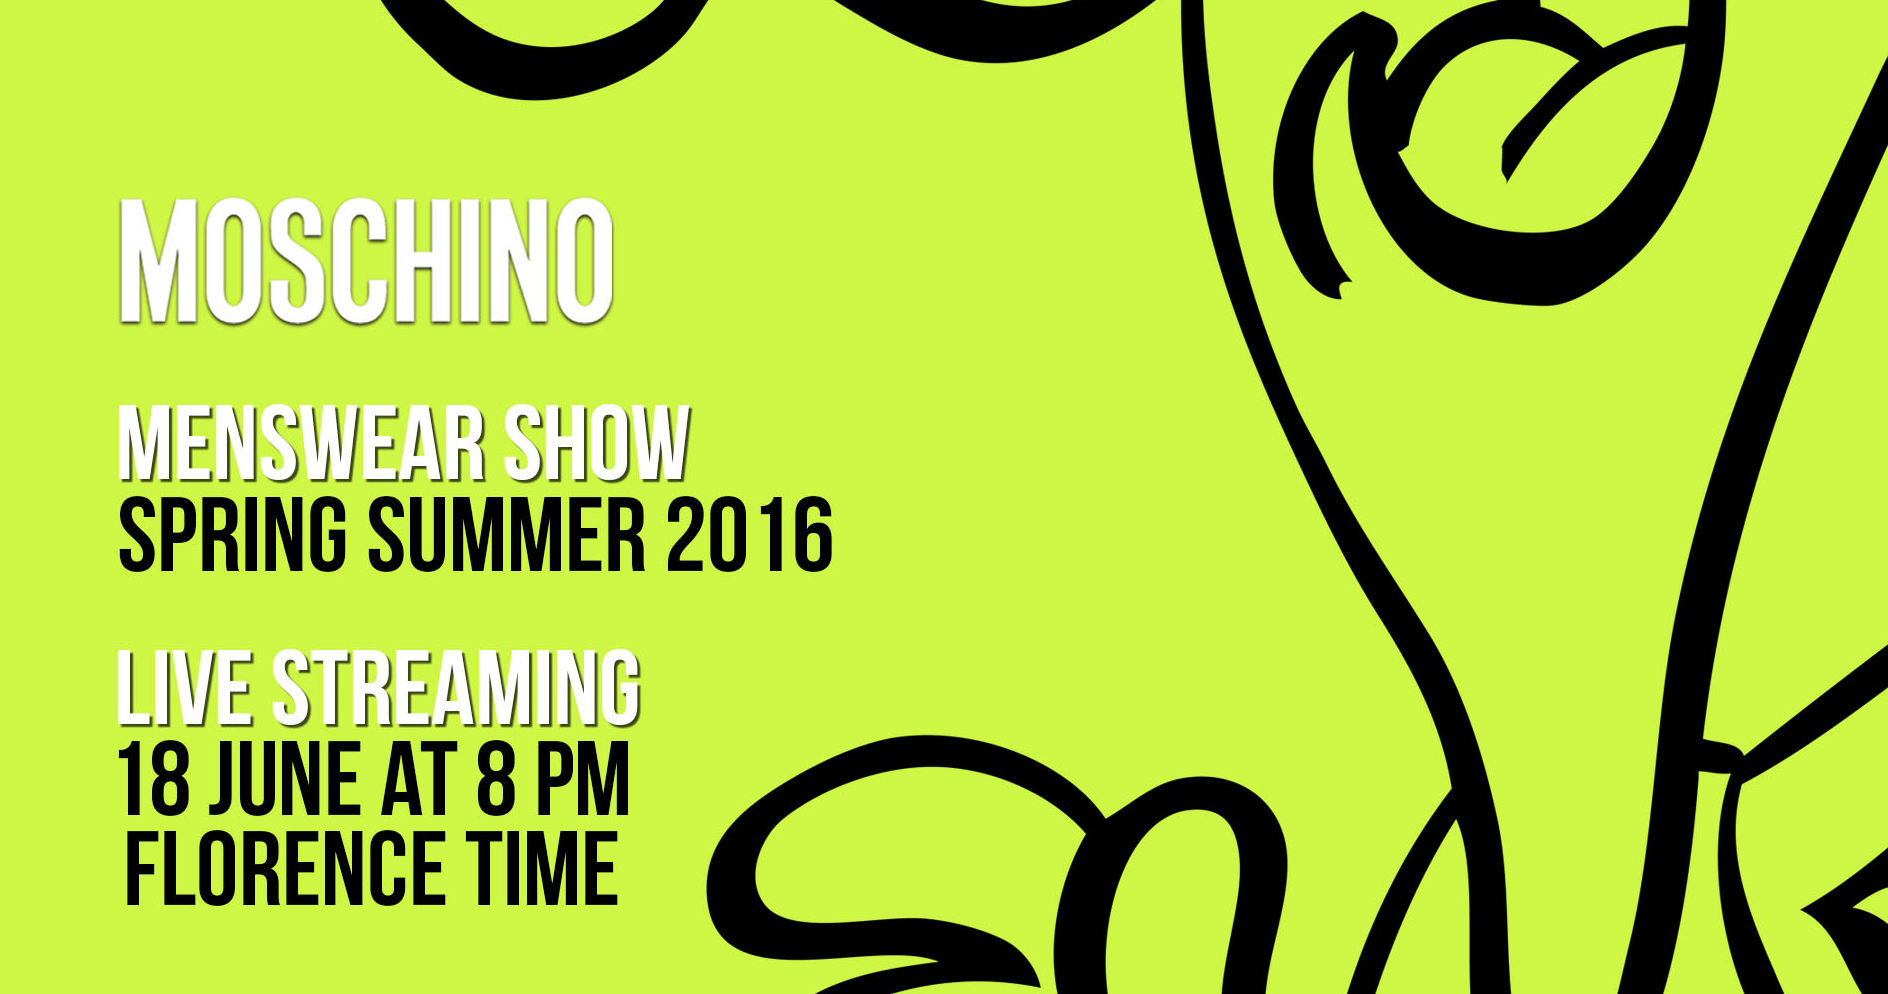 Moschino Spring Summer 2016 Men's Fashion Show Live Streaming 18th June 8pm Florence